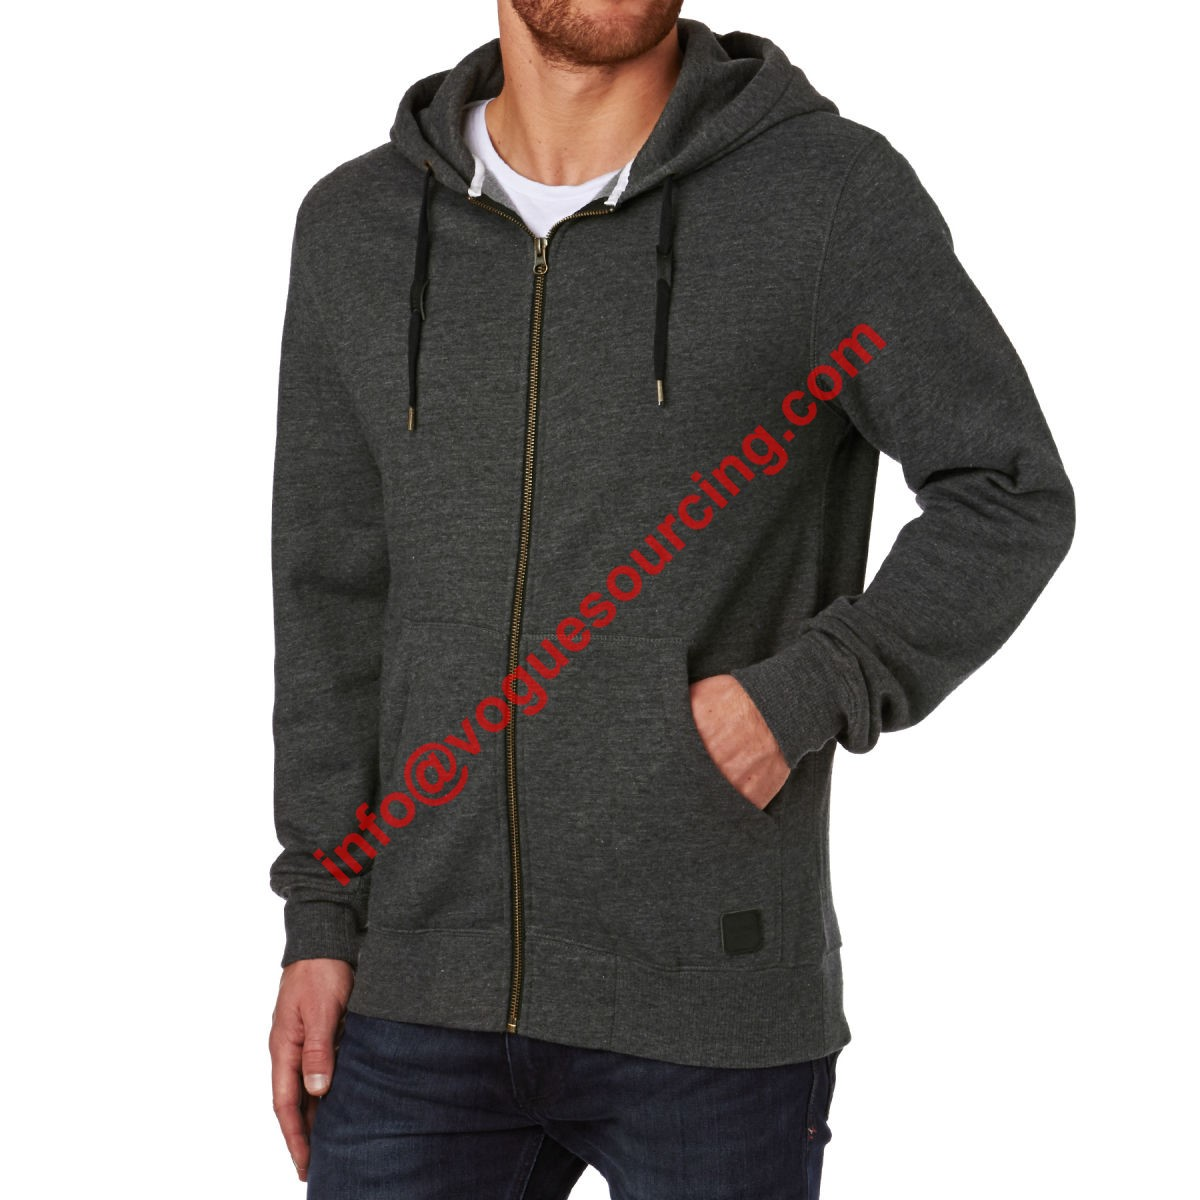 men-hoodies-manufacturers-suppliers-exporters-wholesalers-voguesourcing-tirupur-india-uk-europe-usa-australia-uae-canada